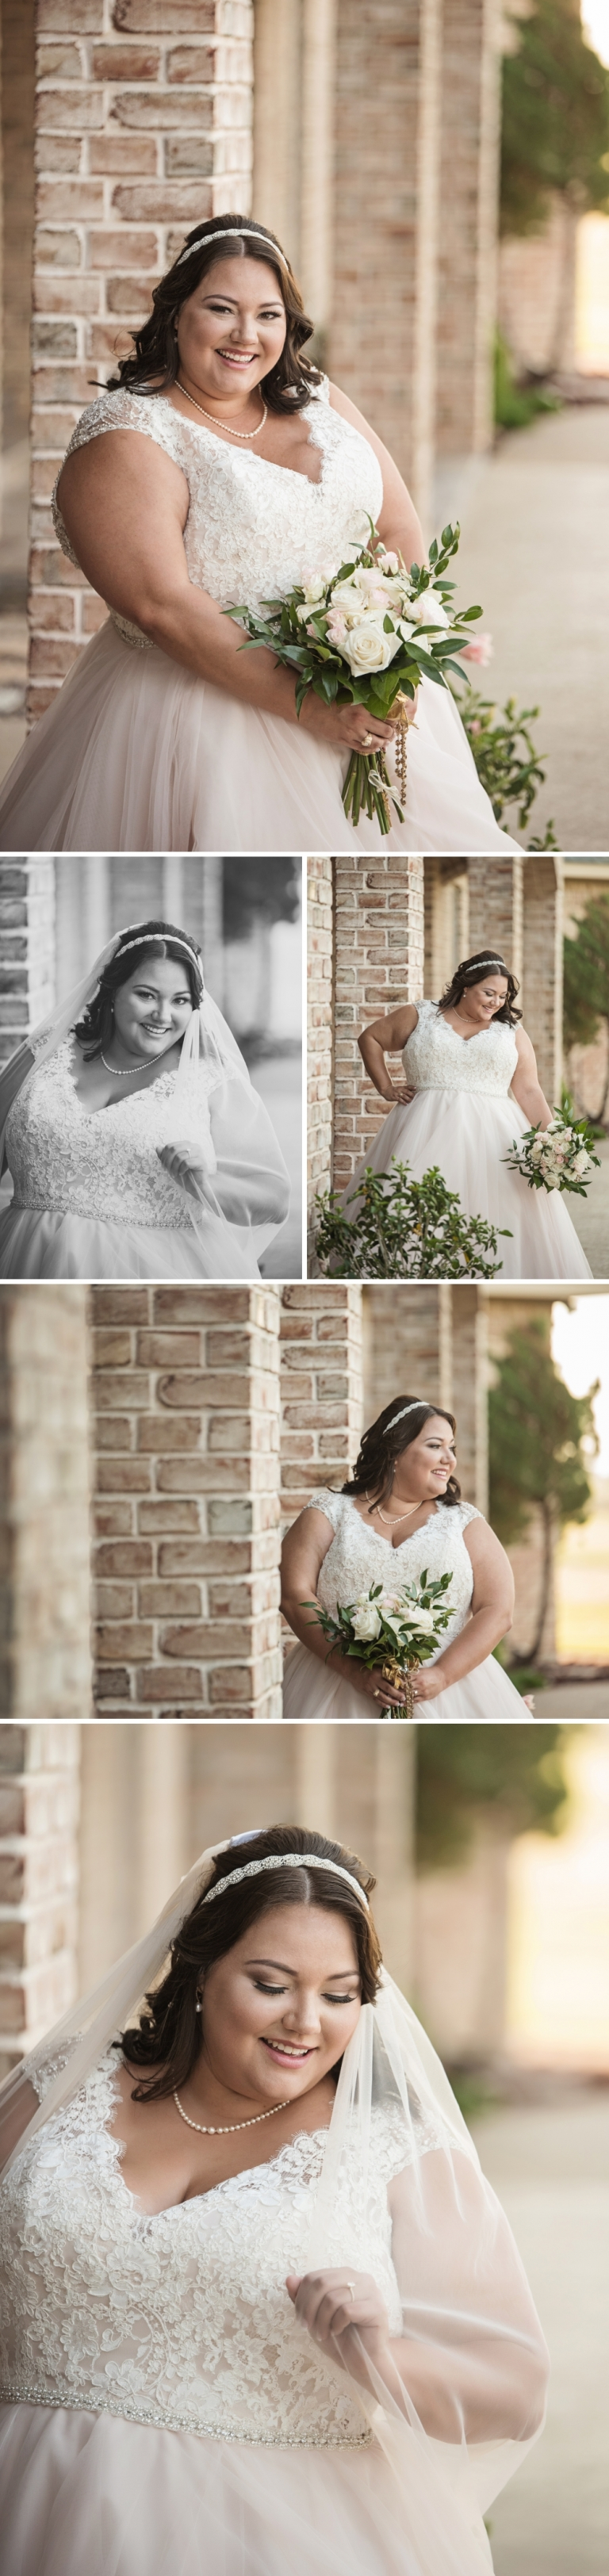 Bridal Session in Gainesville TX Sunset